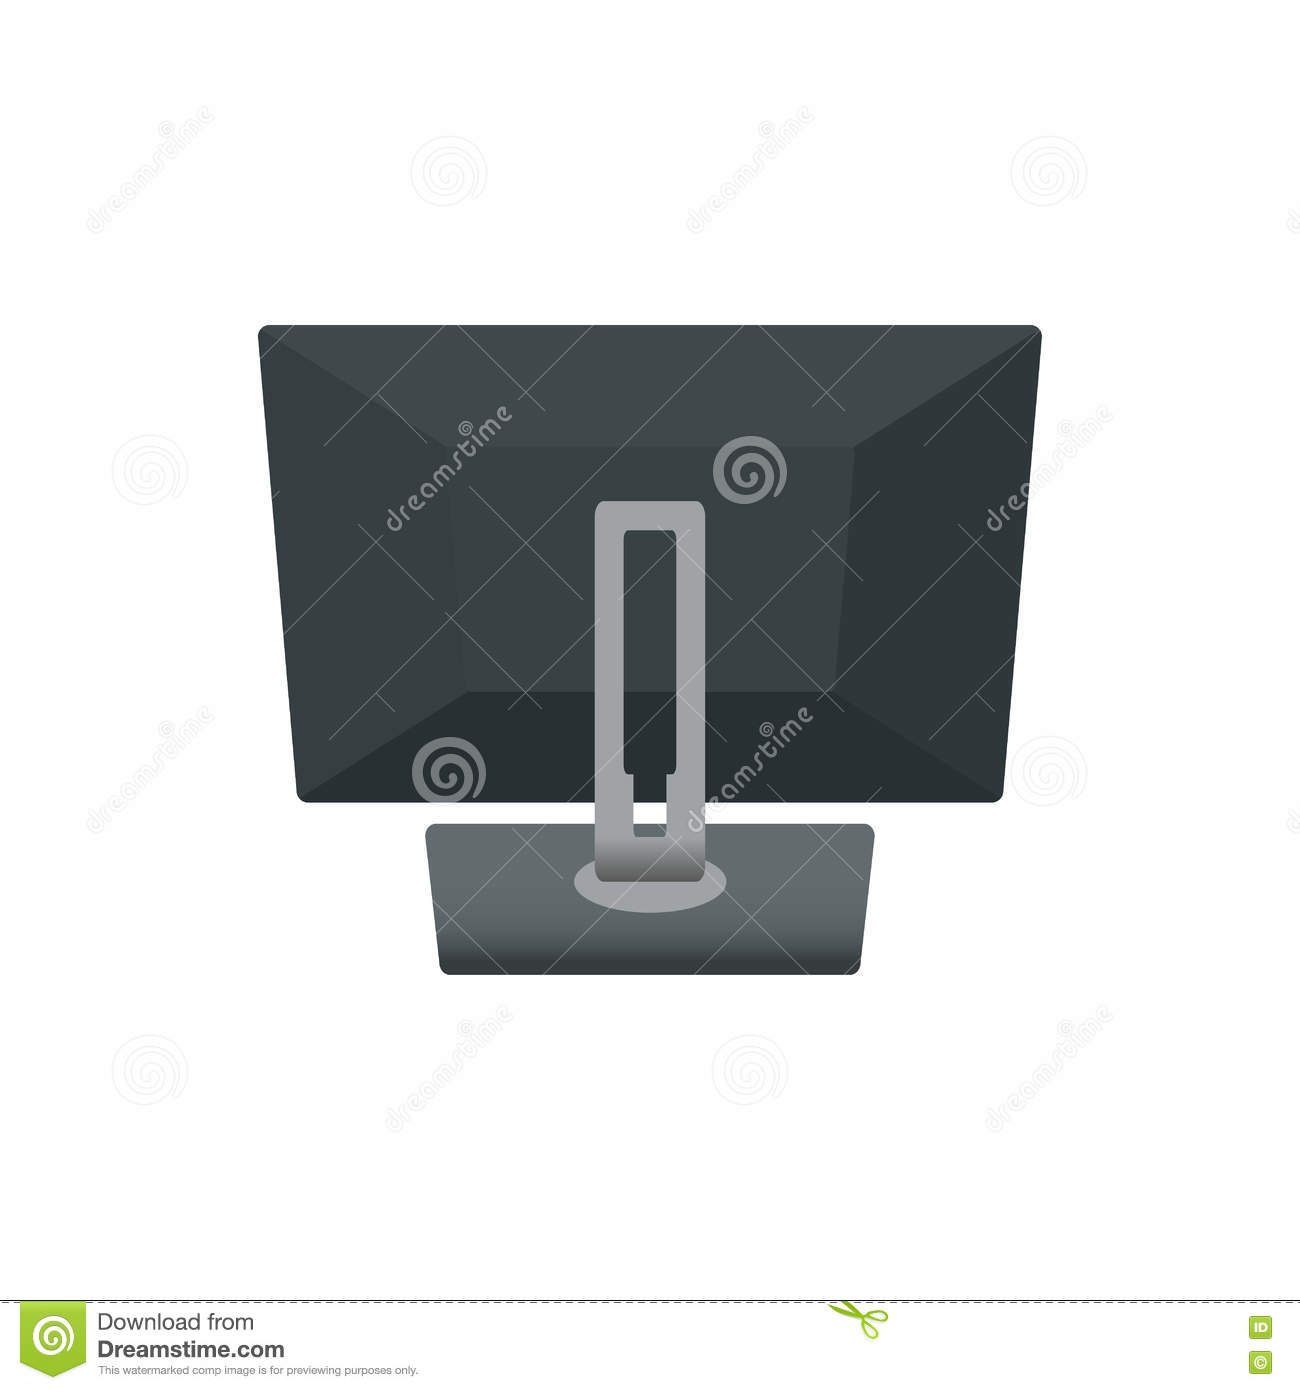 Computer Monitor Notebook Laptop, Television Backside. Icon Vector Illustration. on White Background